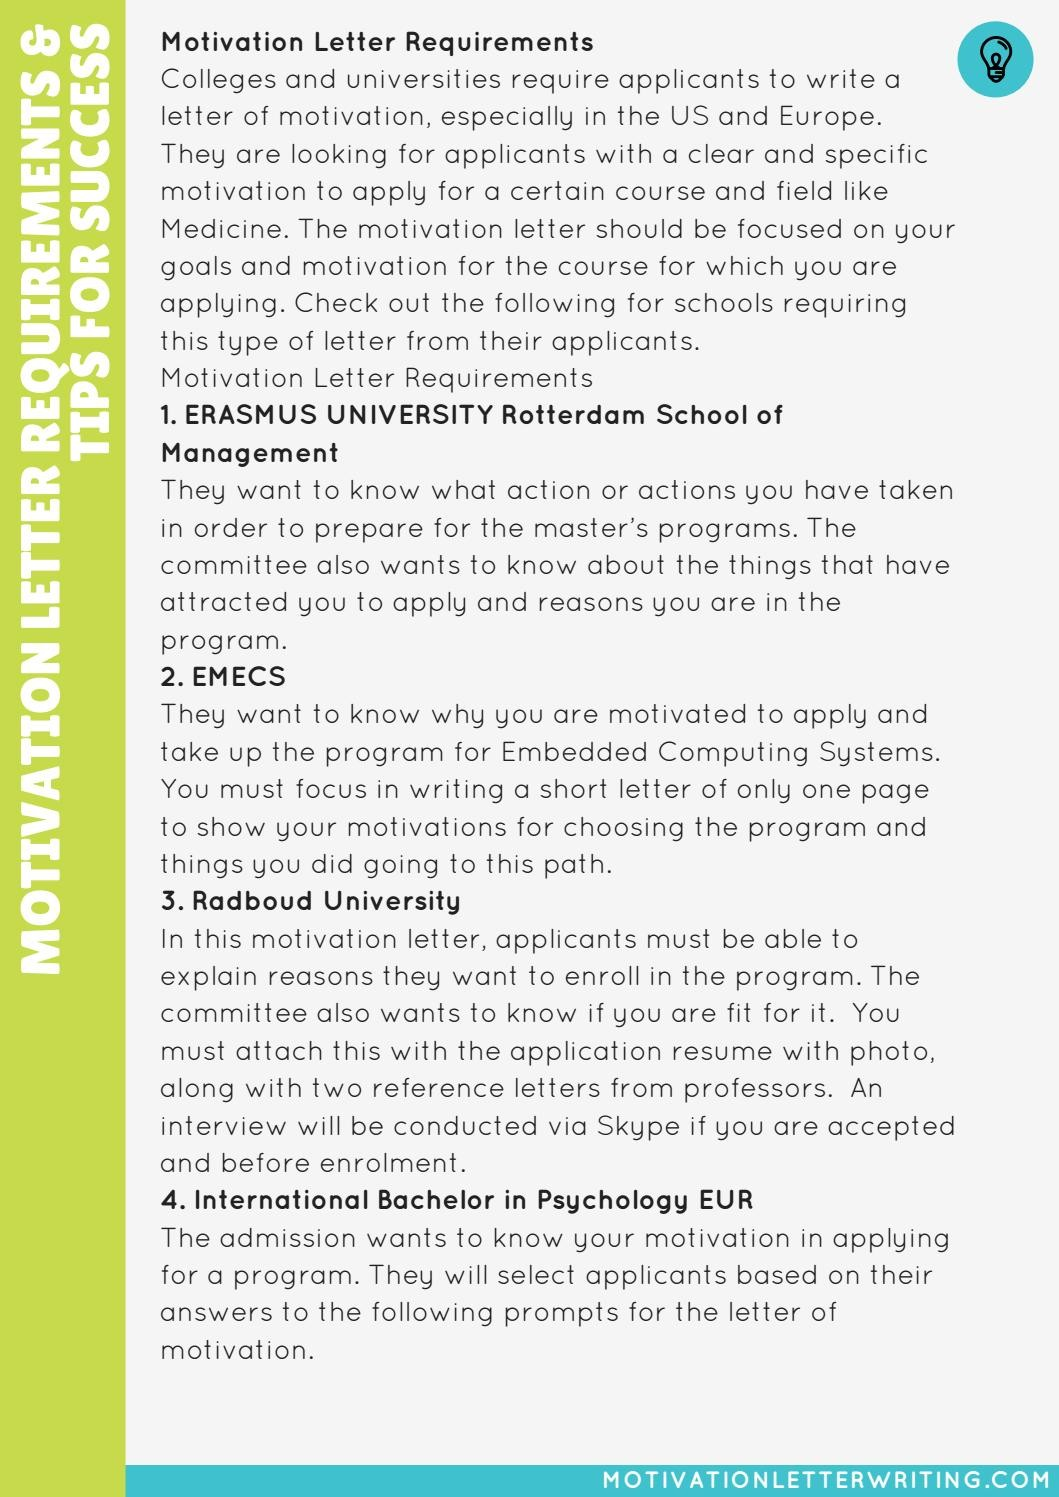 motivation letter university  Motivation Letter for University Requirements And Tips for ..